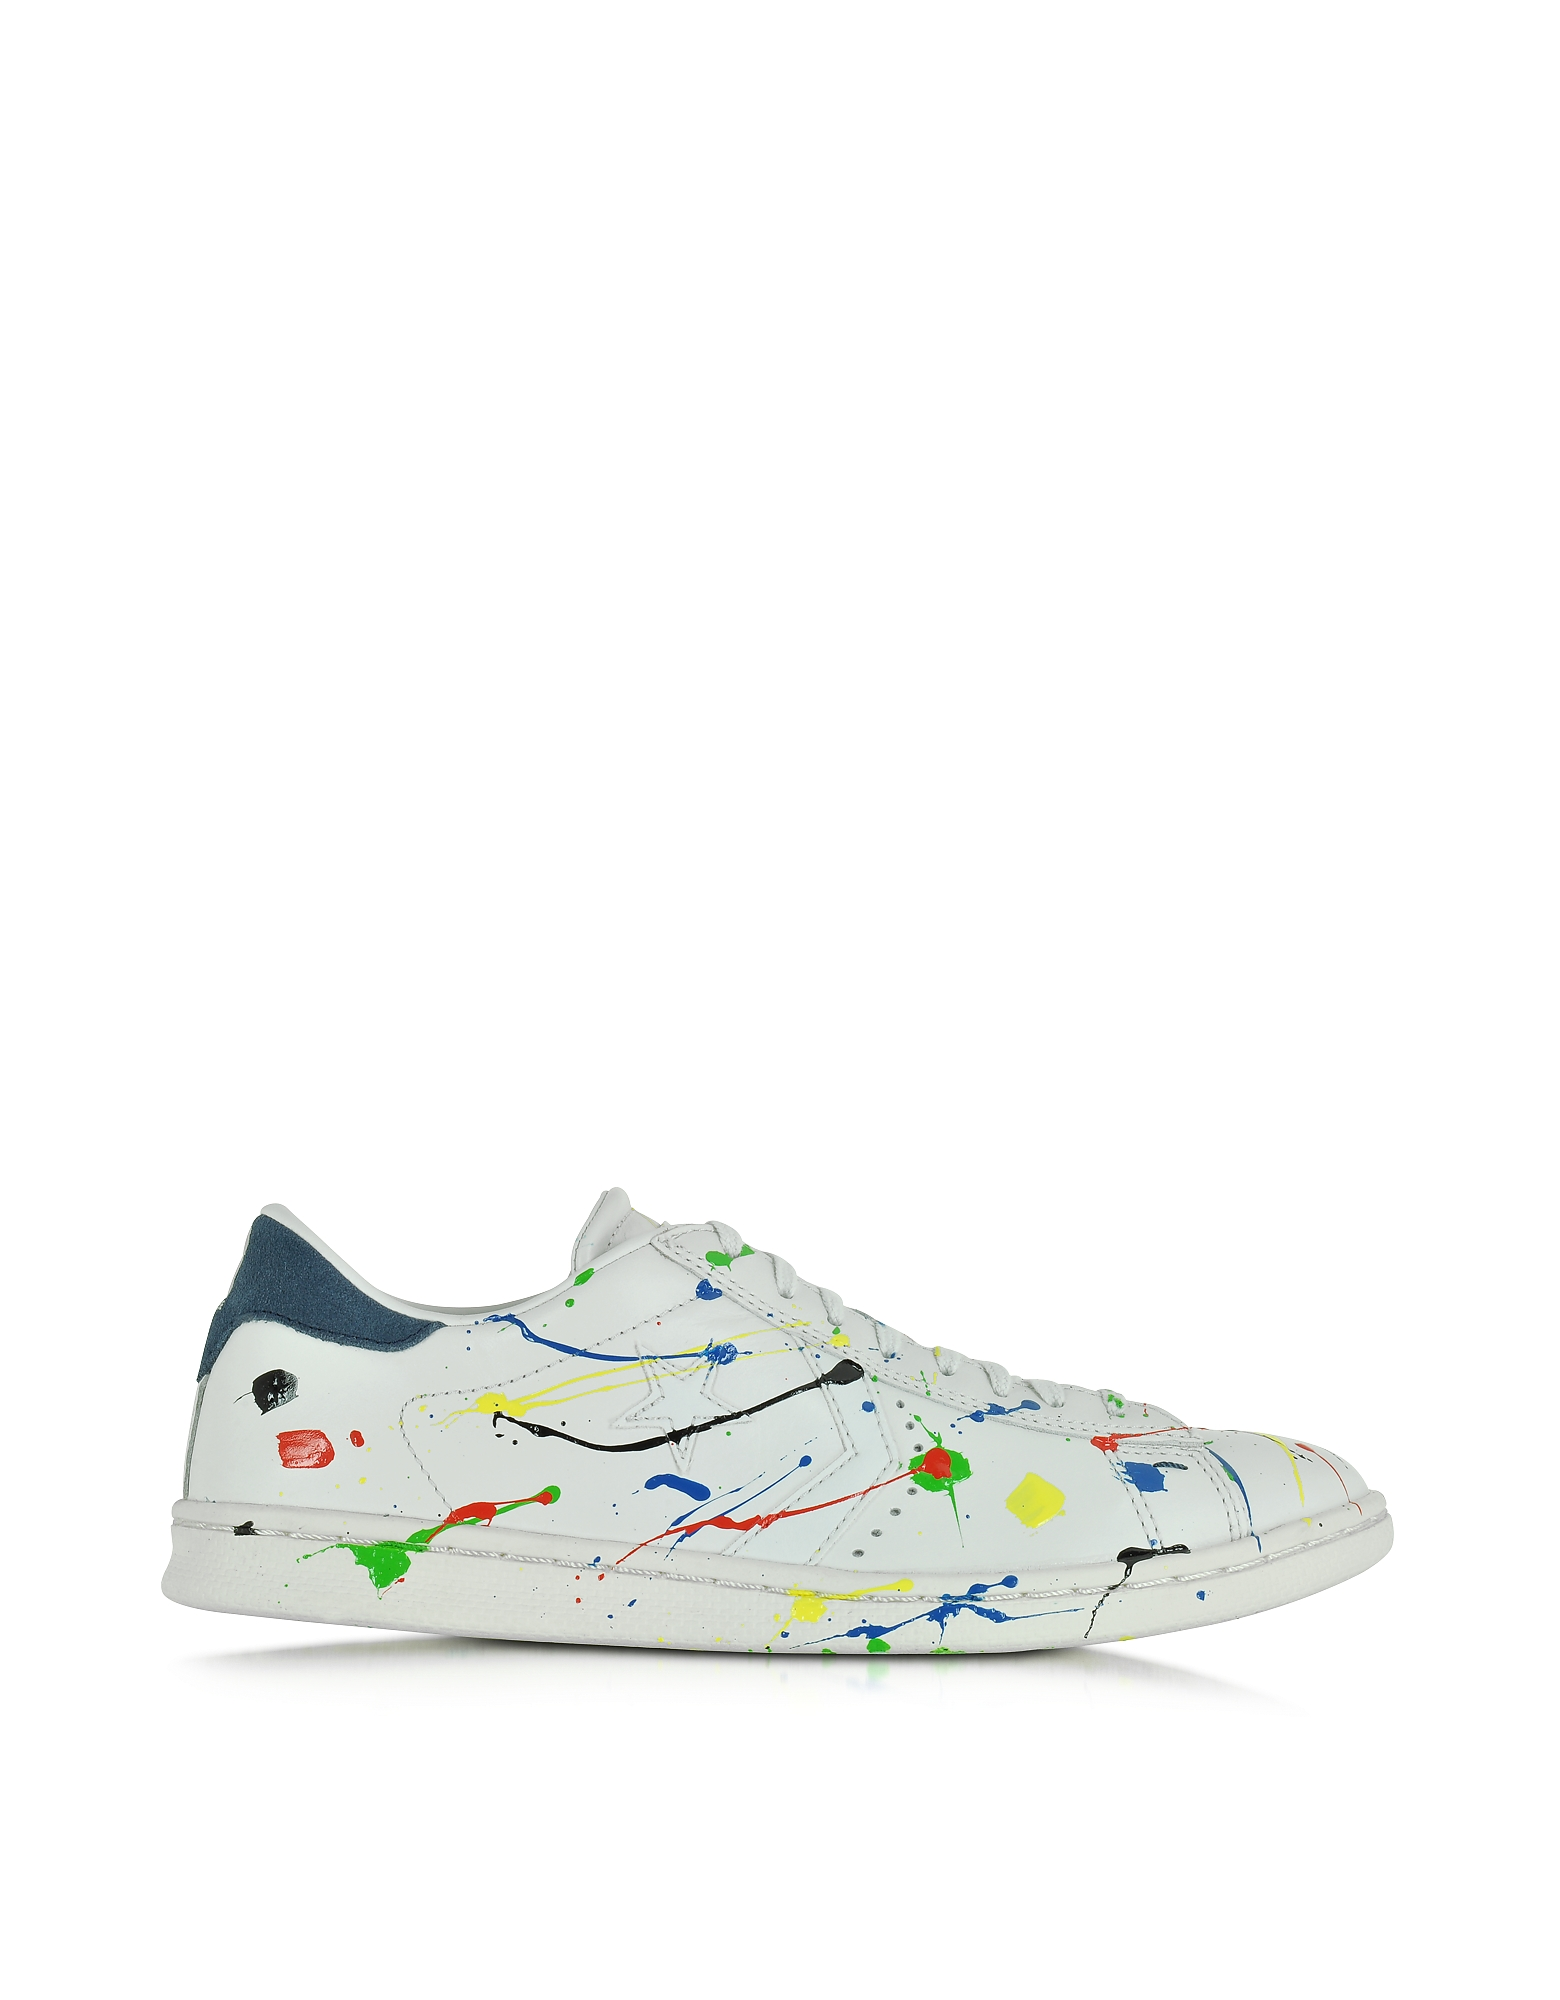 Converse Limited Edition Pro Lp Ox - ������� ������� ��������� � ������� �����